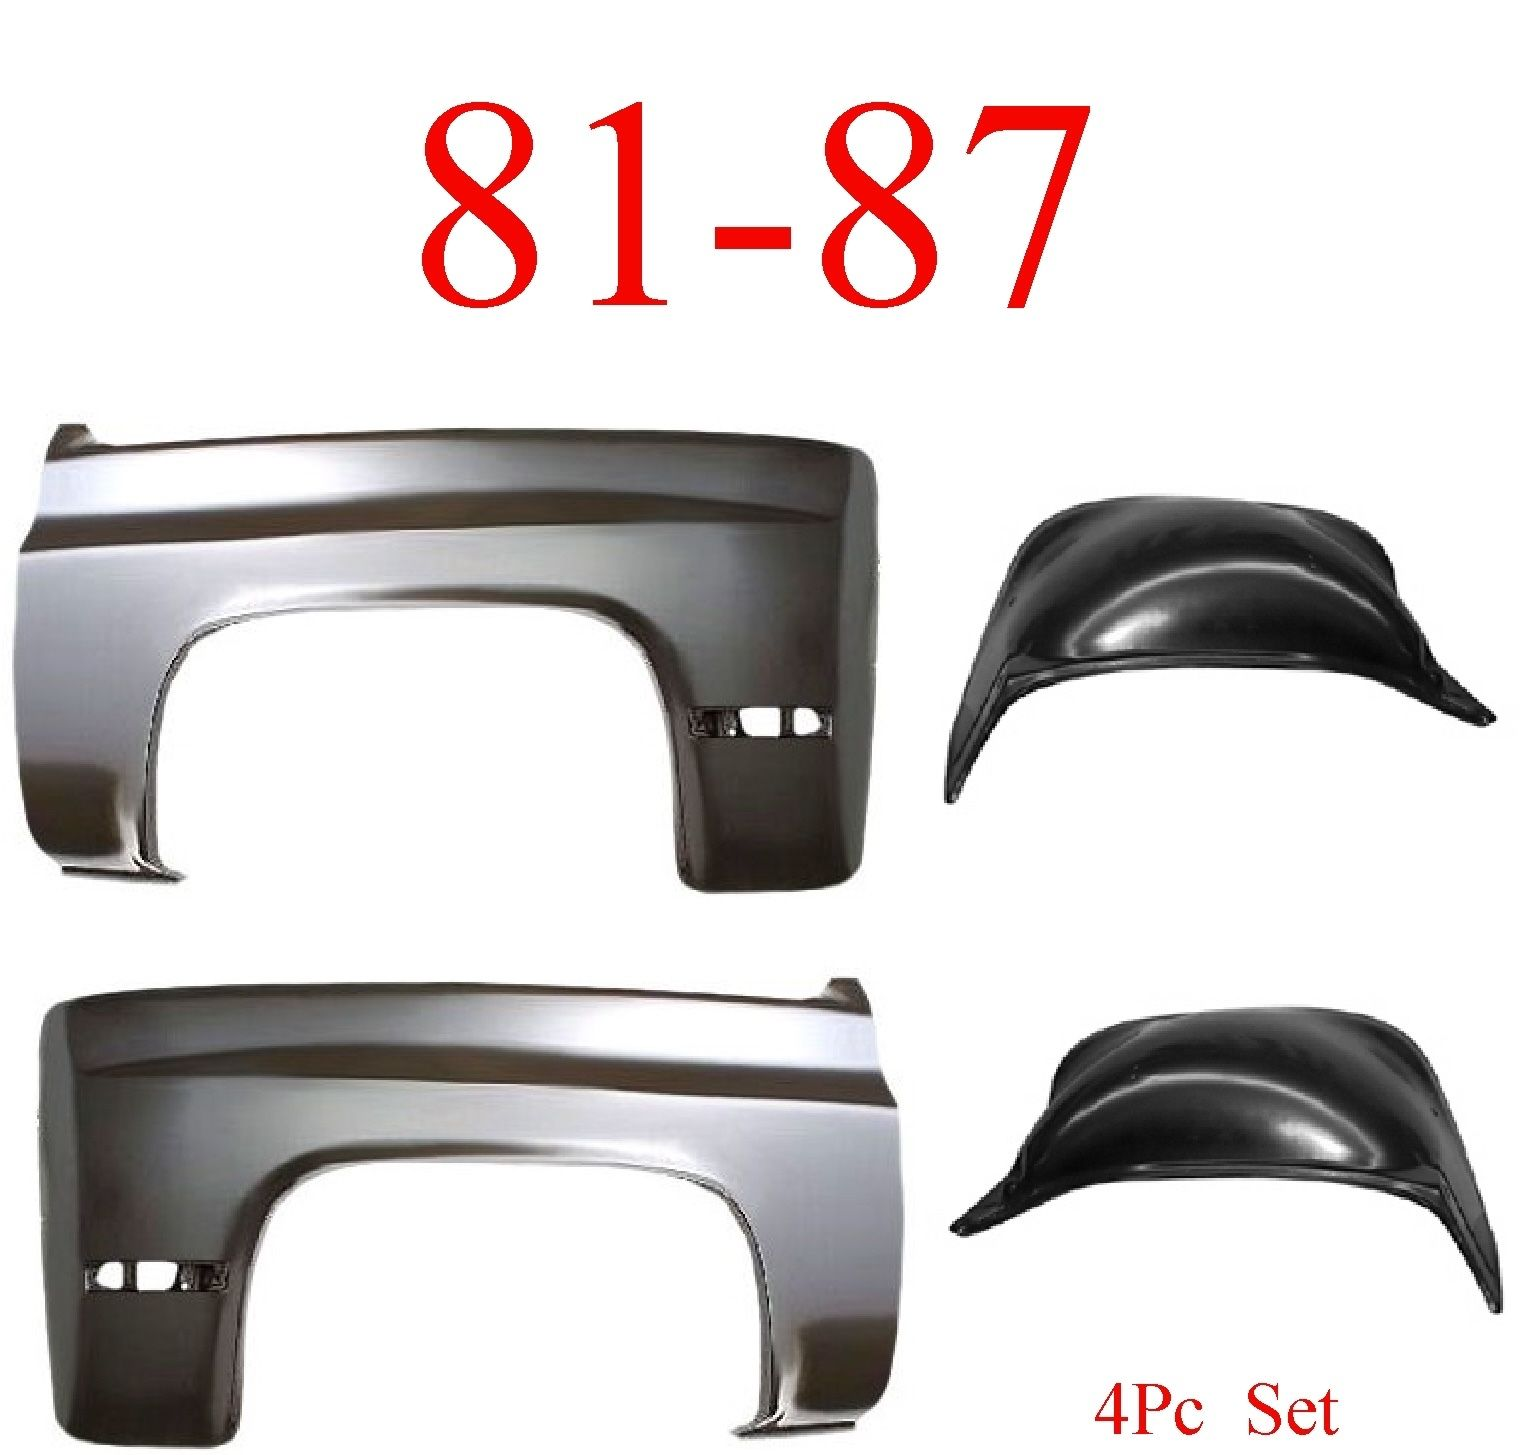 81-87 Chevy 4Pc Front Inner & Outer Fender Set